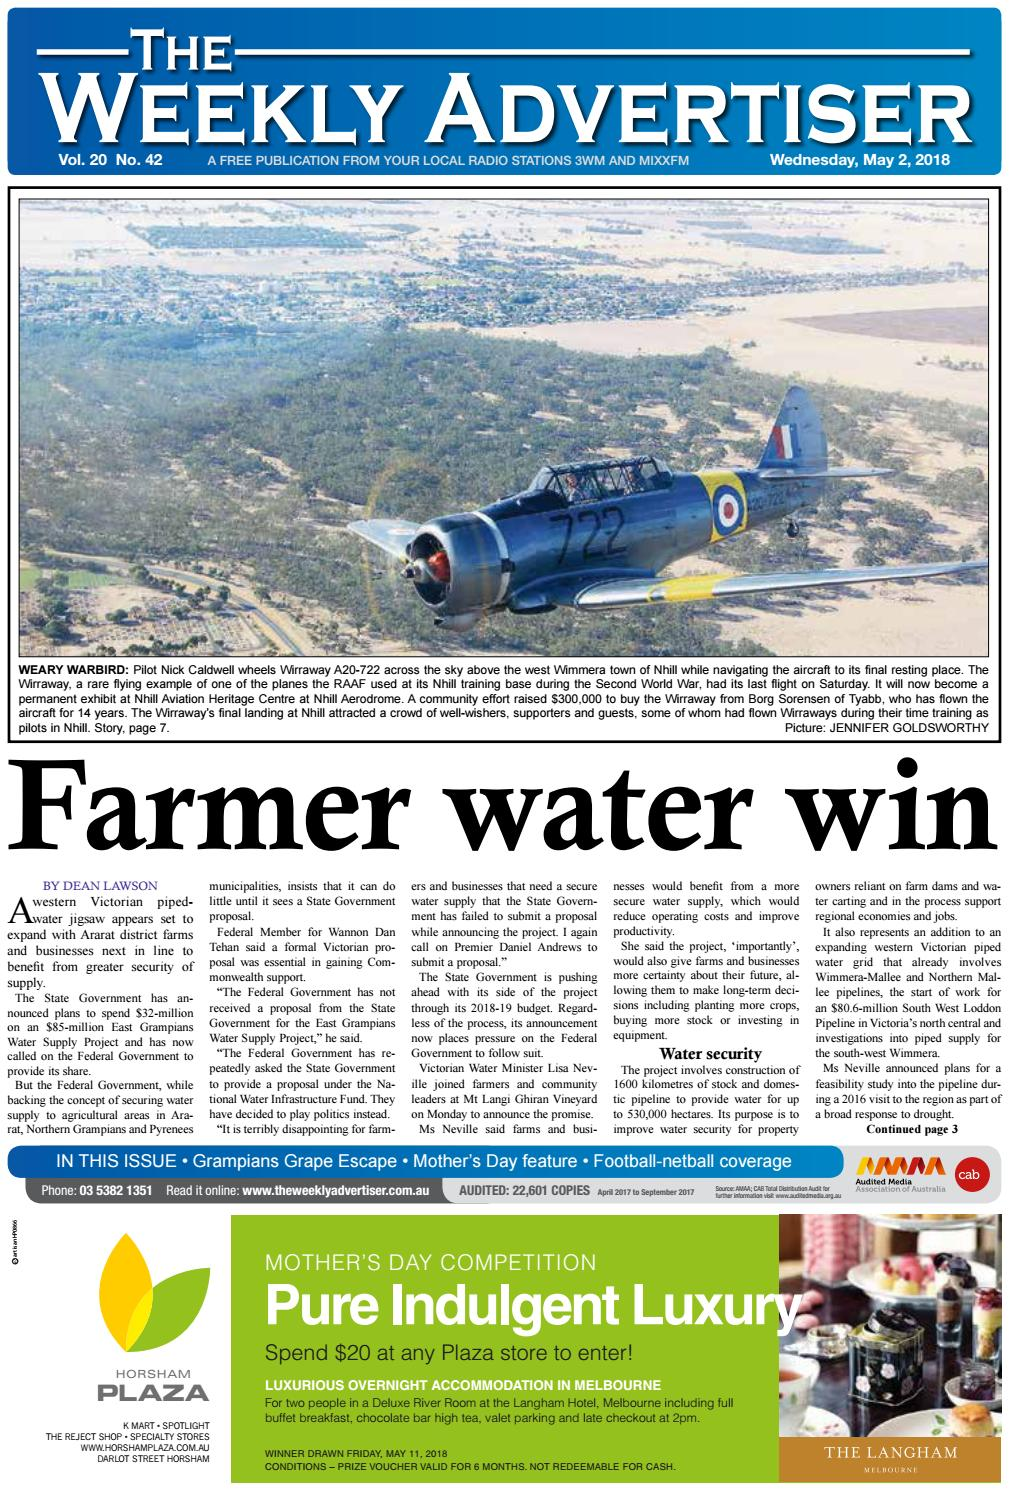 The weekly advertiser wednesday may 2 2018 by the weekly advertiser issuu